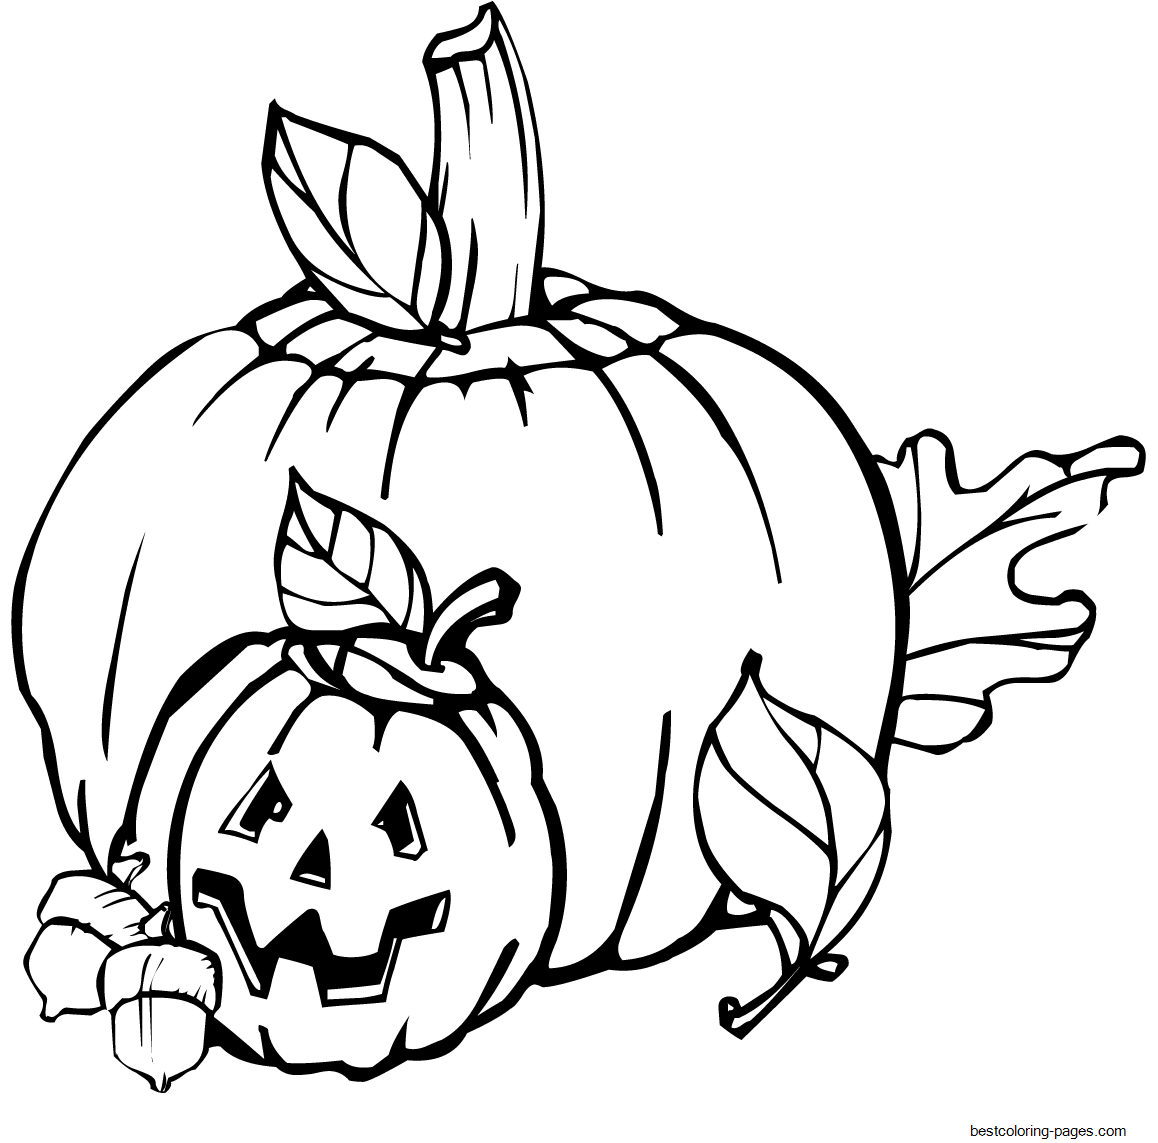 halloween pictures of pumpkins to color print download pumpkin coloring pages and benefits of to pumpkins halloween of color pictures